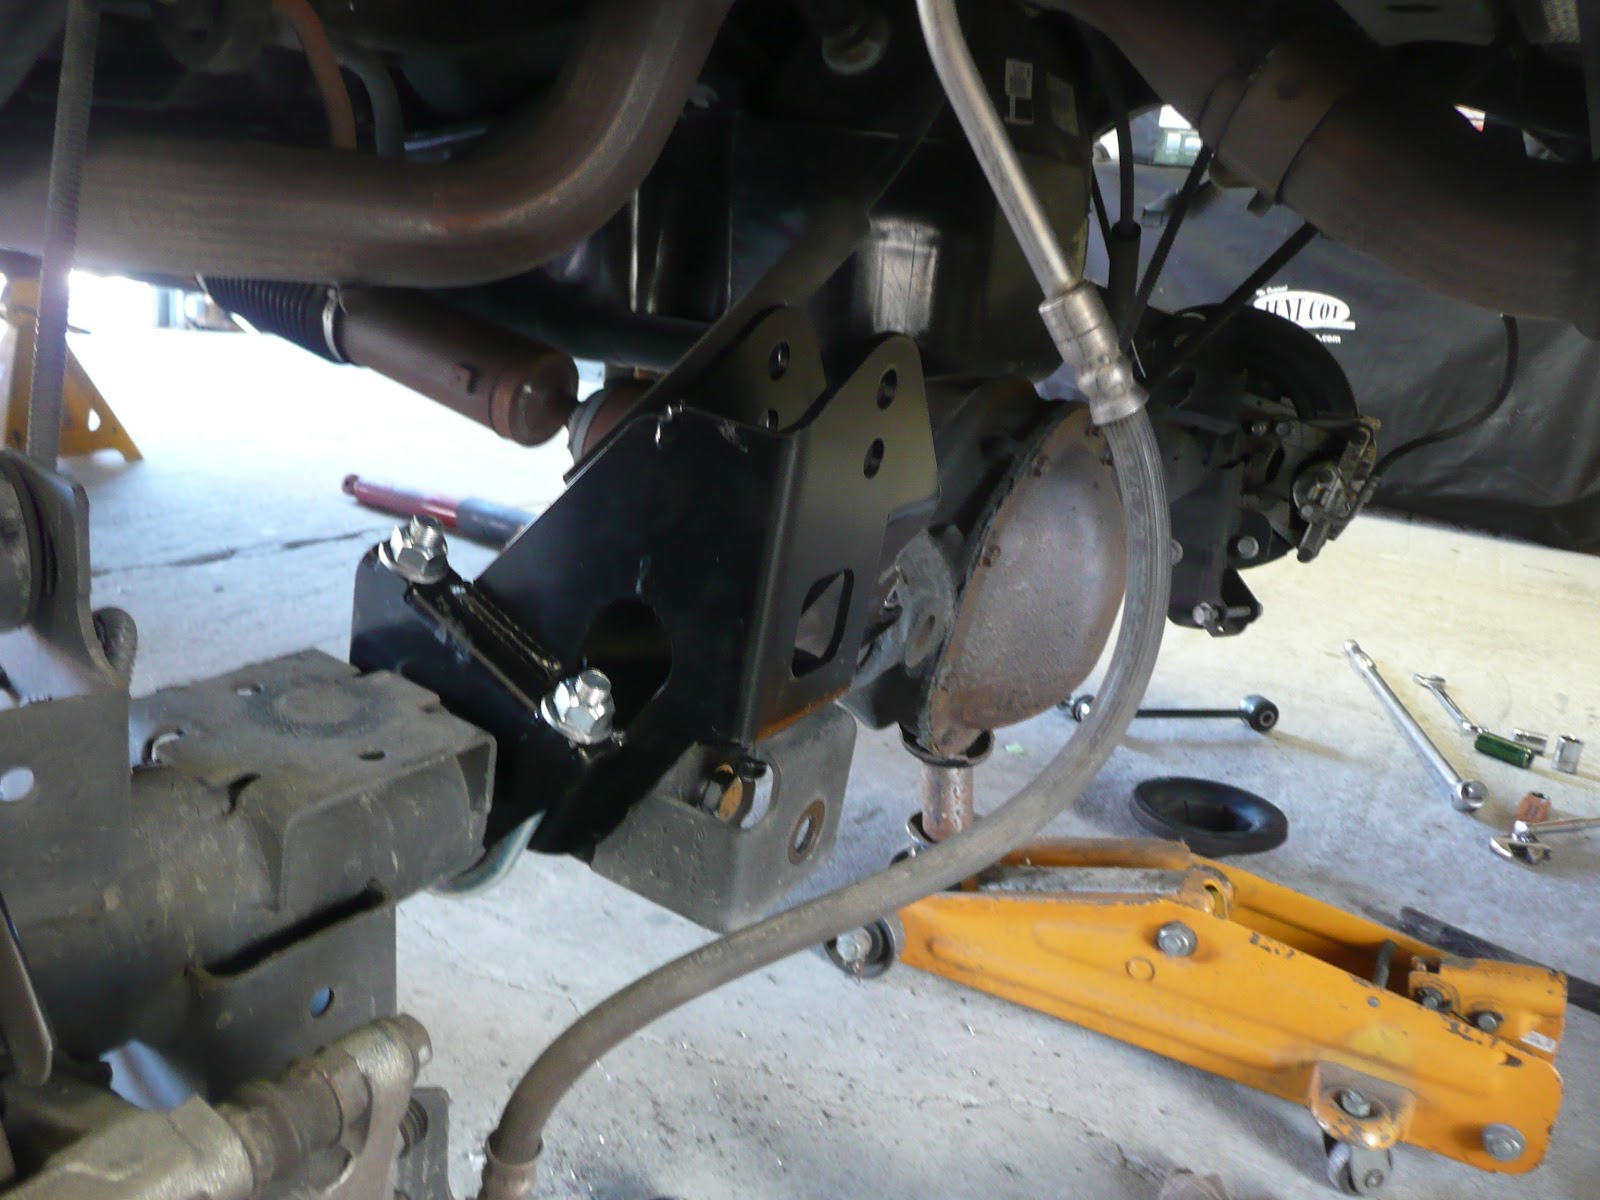 Jeep Yj Rear Suspension Diagram One Of The Key Components Is Ultra Tall Track Bar Bracket